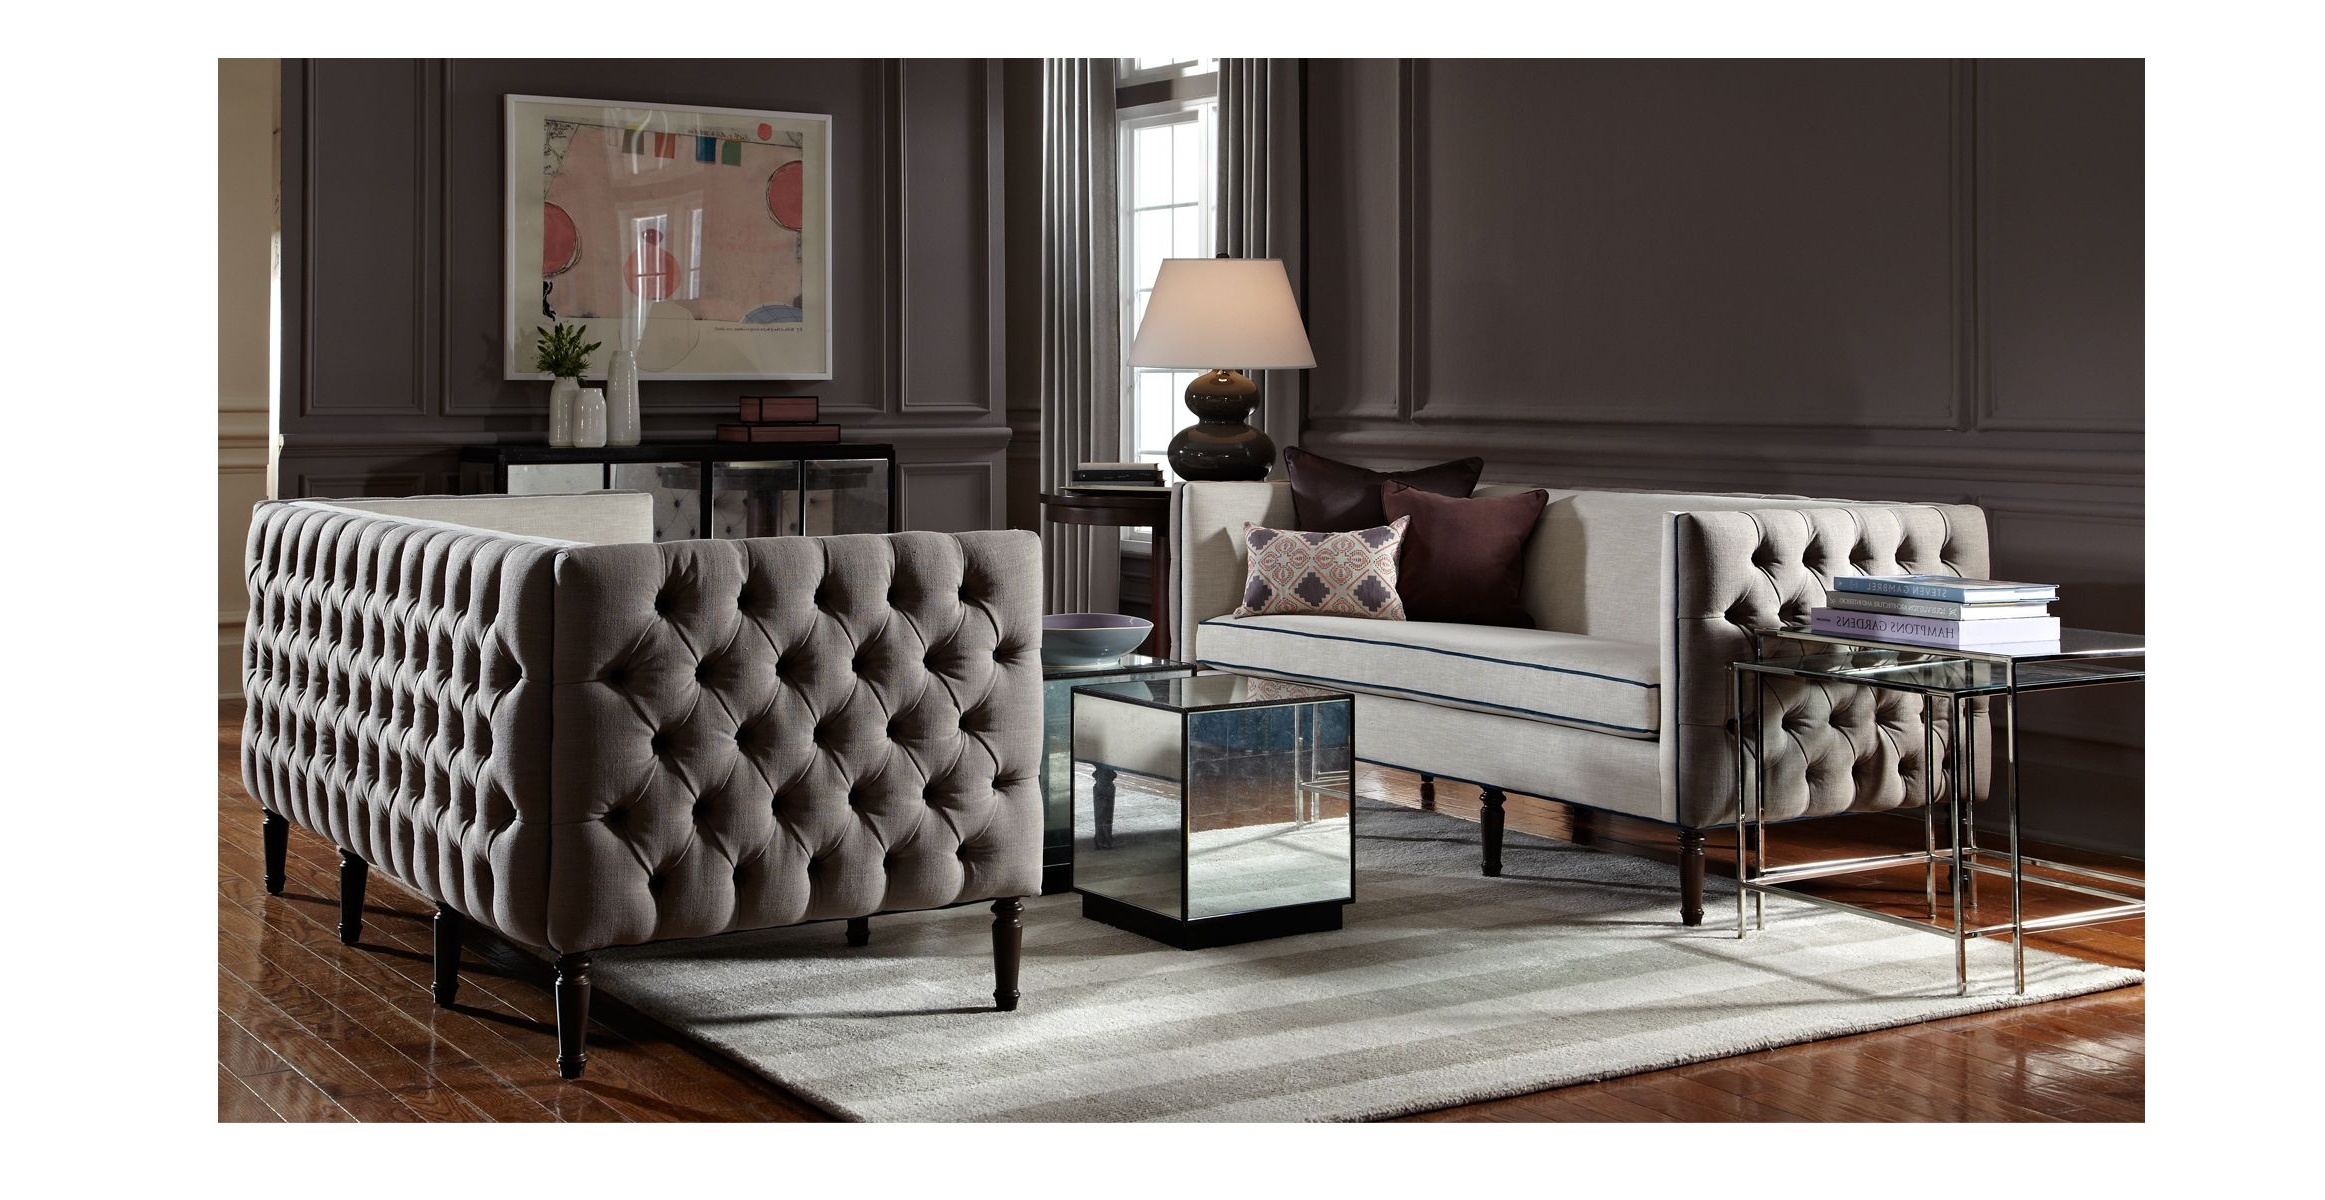 Modern Tufted Sofa – Google Search | Turn Of The Century Moderne Regarding Parsons Travertine Top & Elm Base 48x16 Console Tables (View 12 of 17)